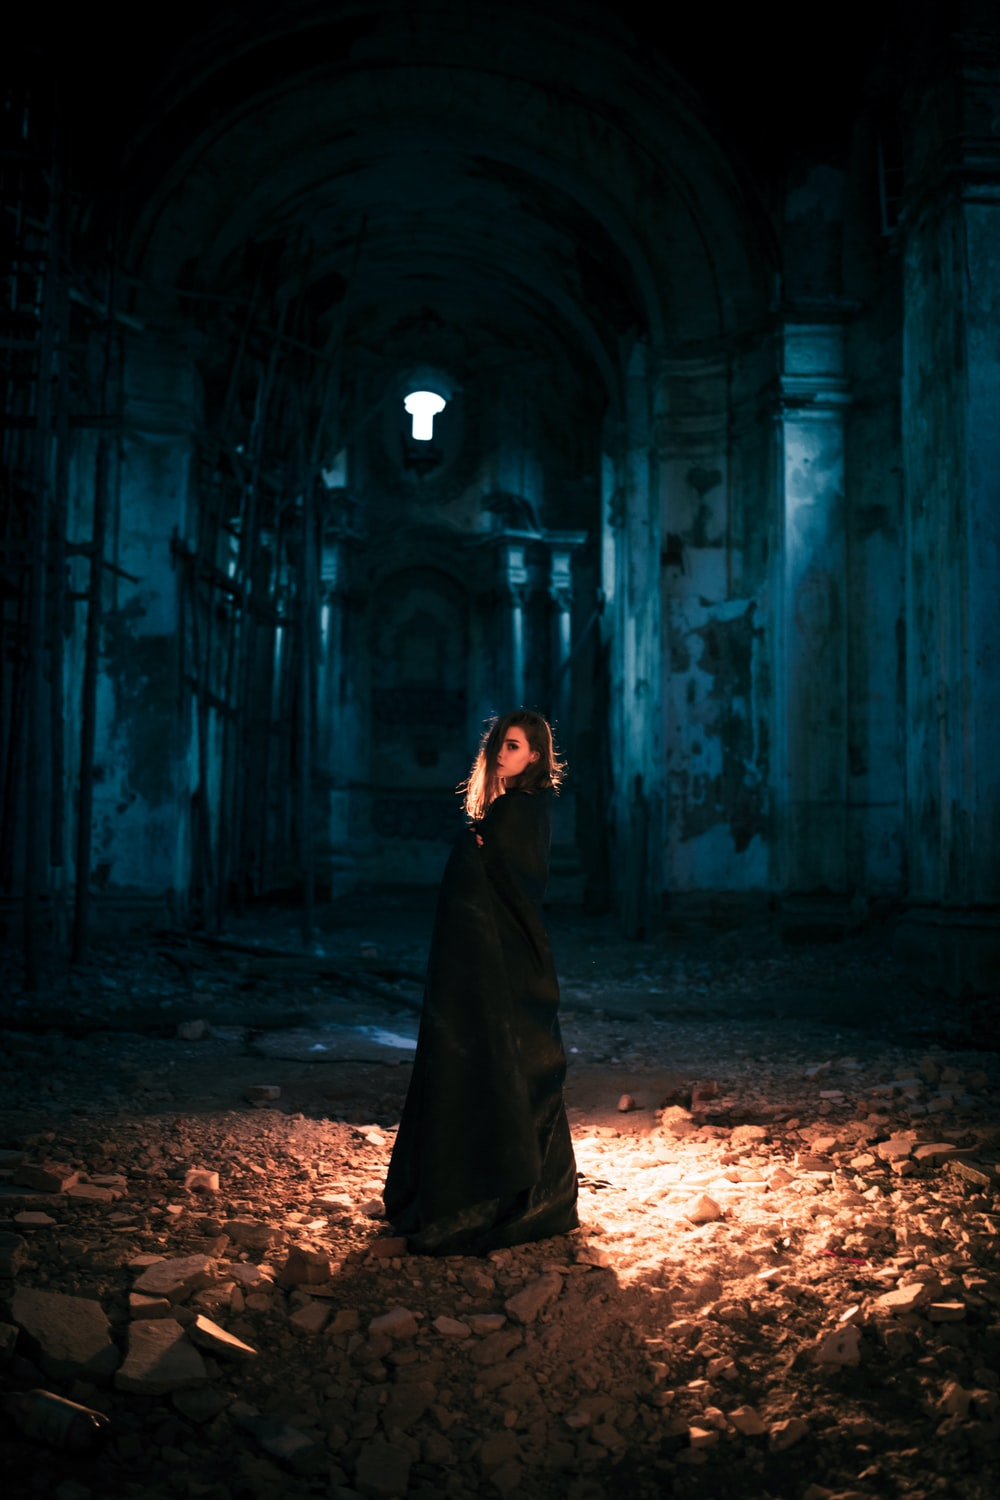 woman in black dress standing in the middle of a tunnel